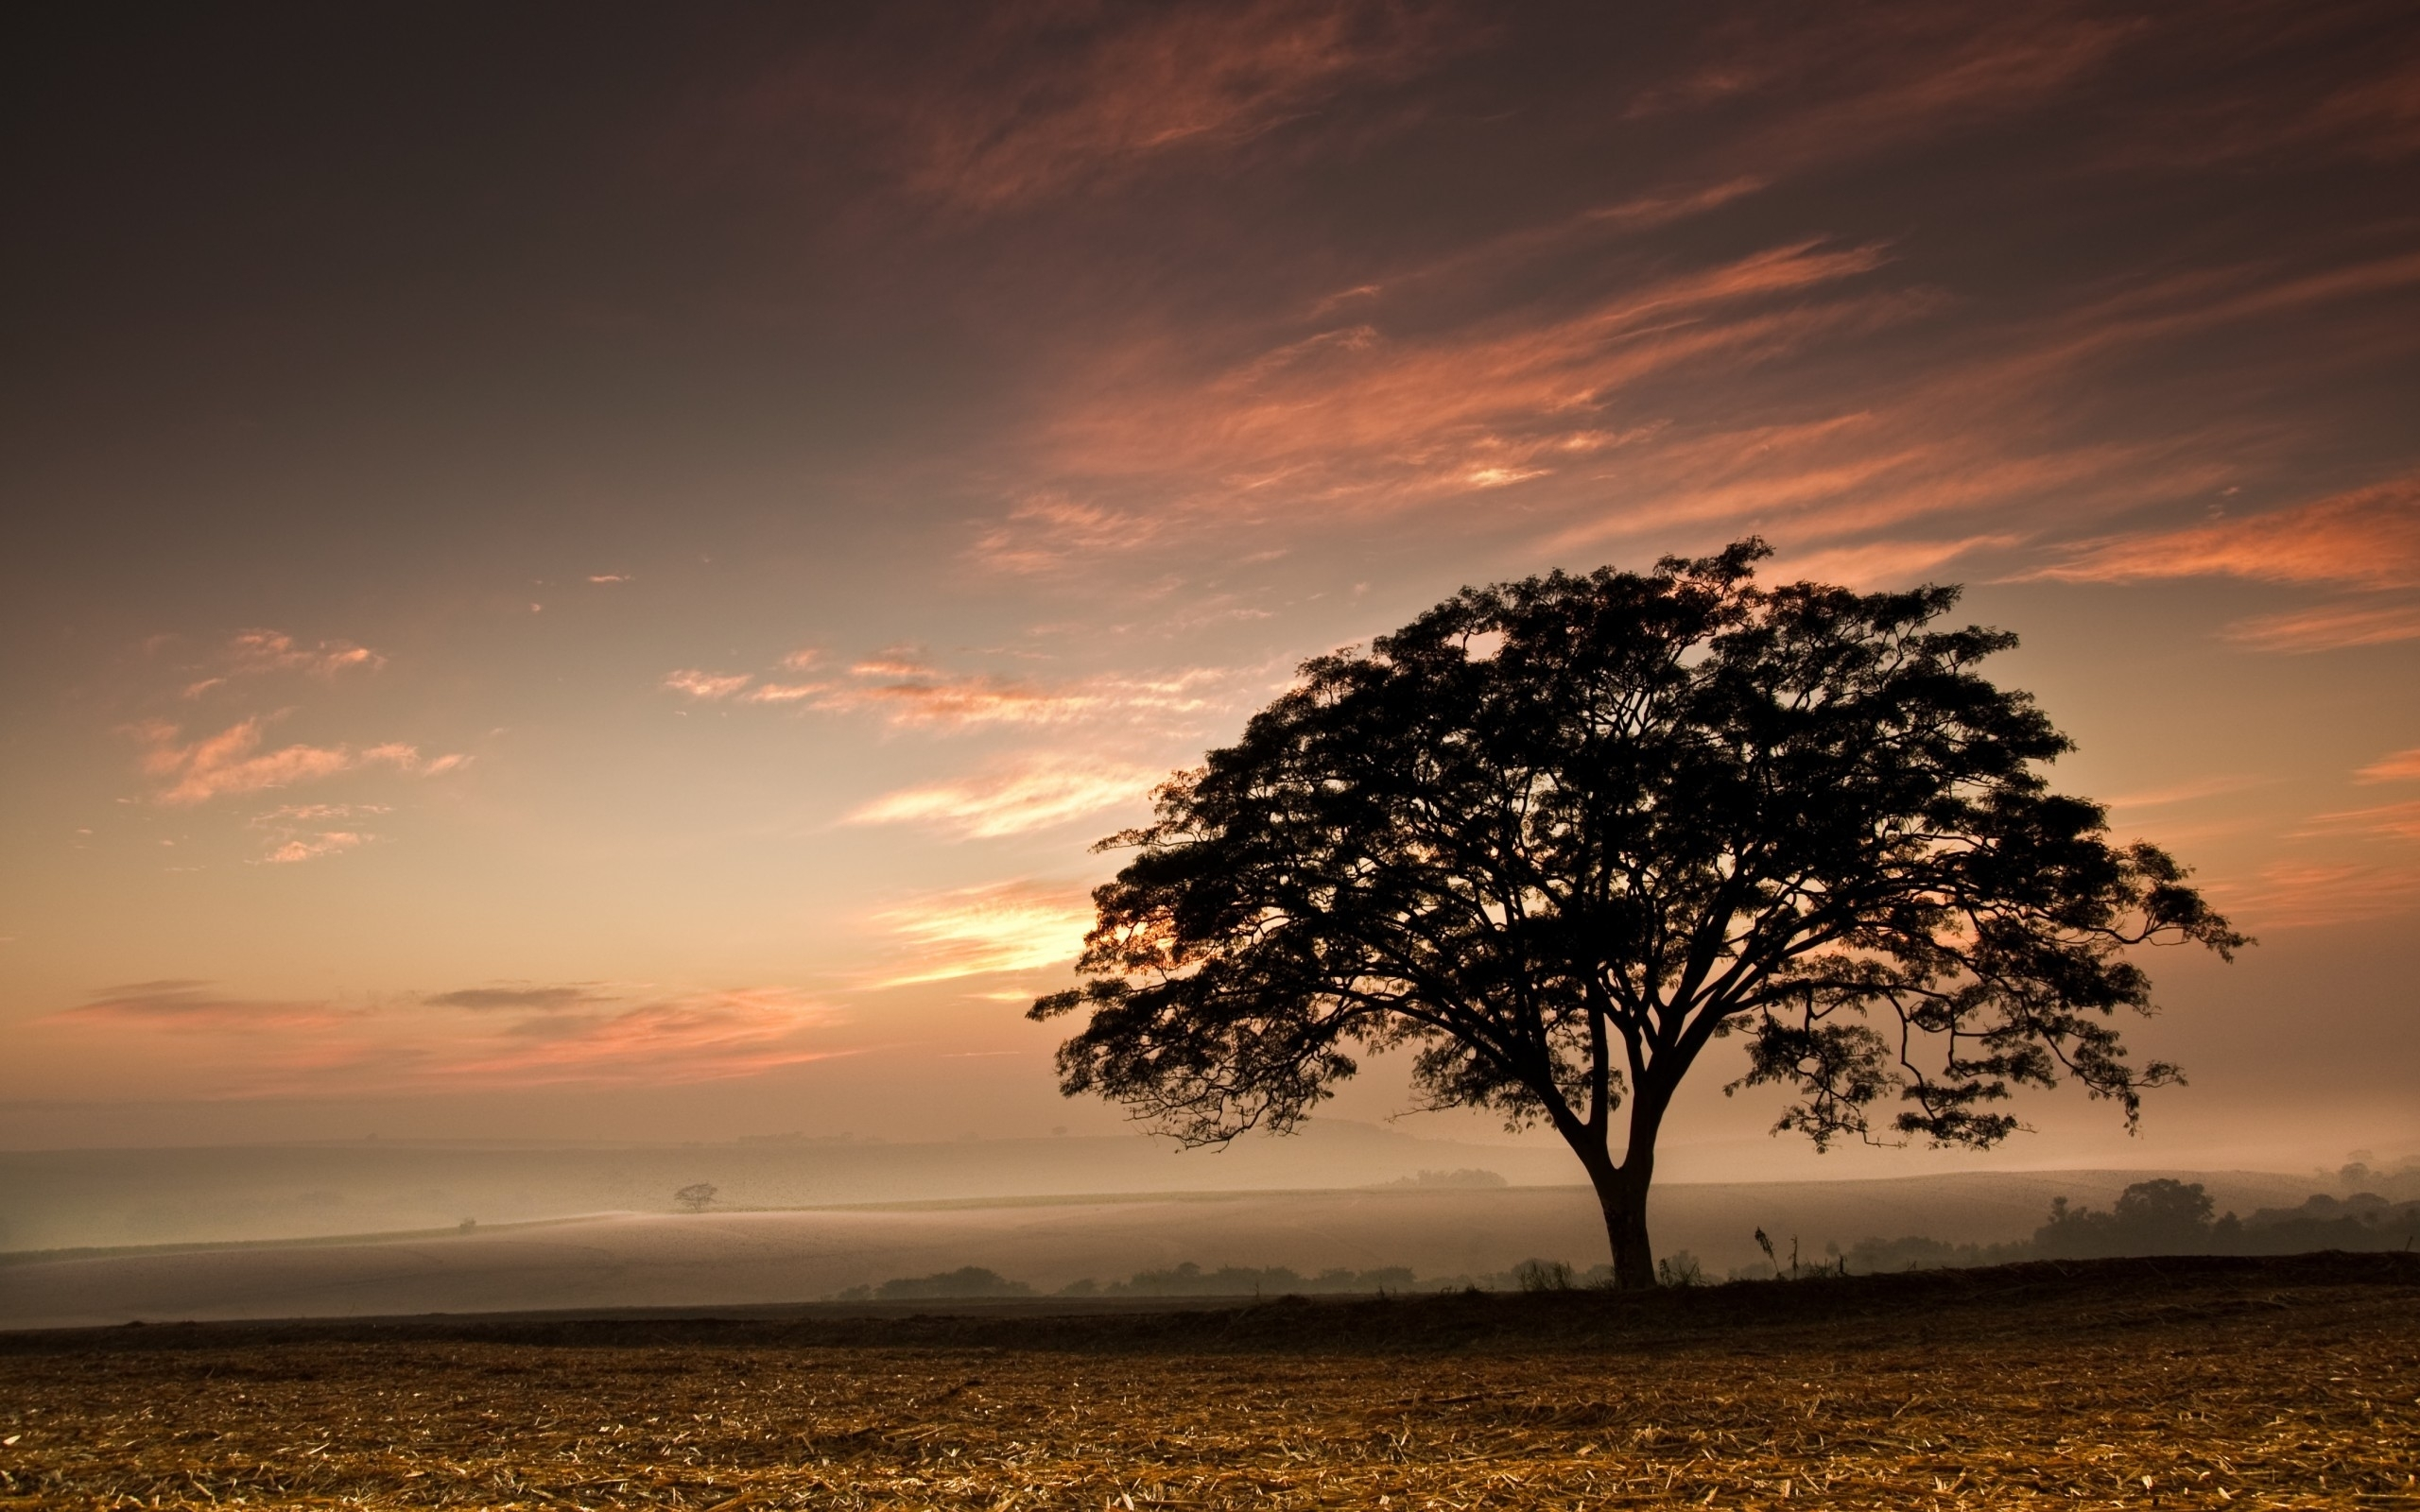 Dark Trees Hd Wallpapers: Dark Tree Harvested Field Sun Wallpapers